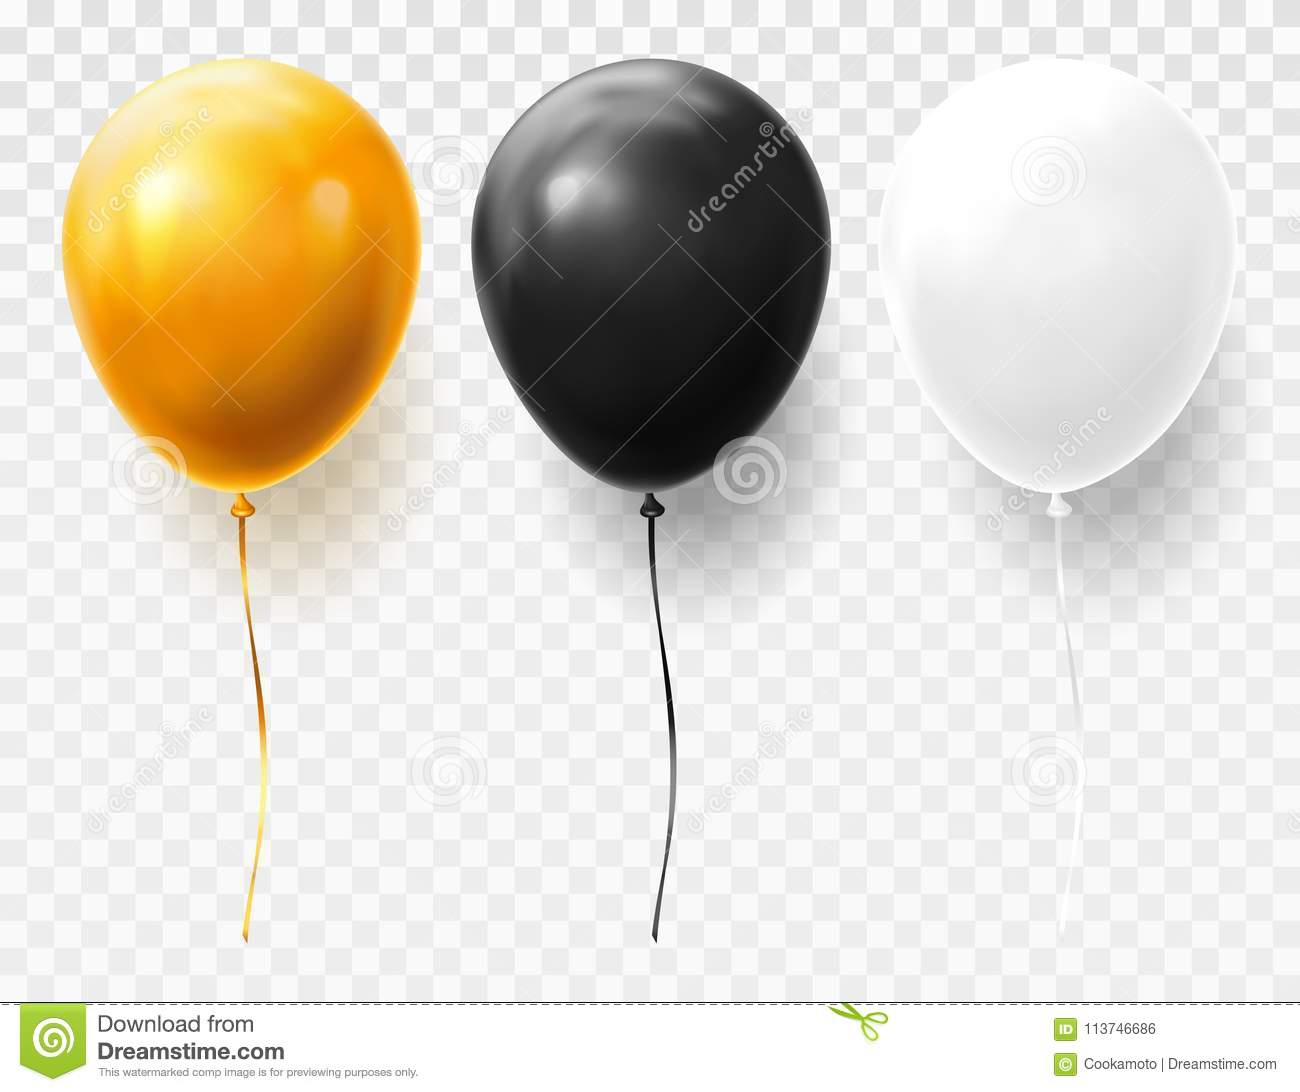 Realistic and volumetric balloons on transparent